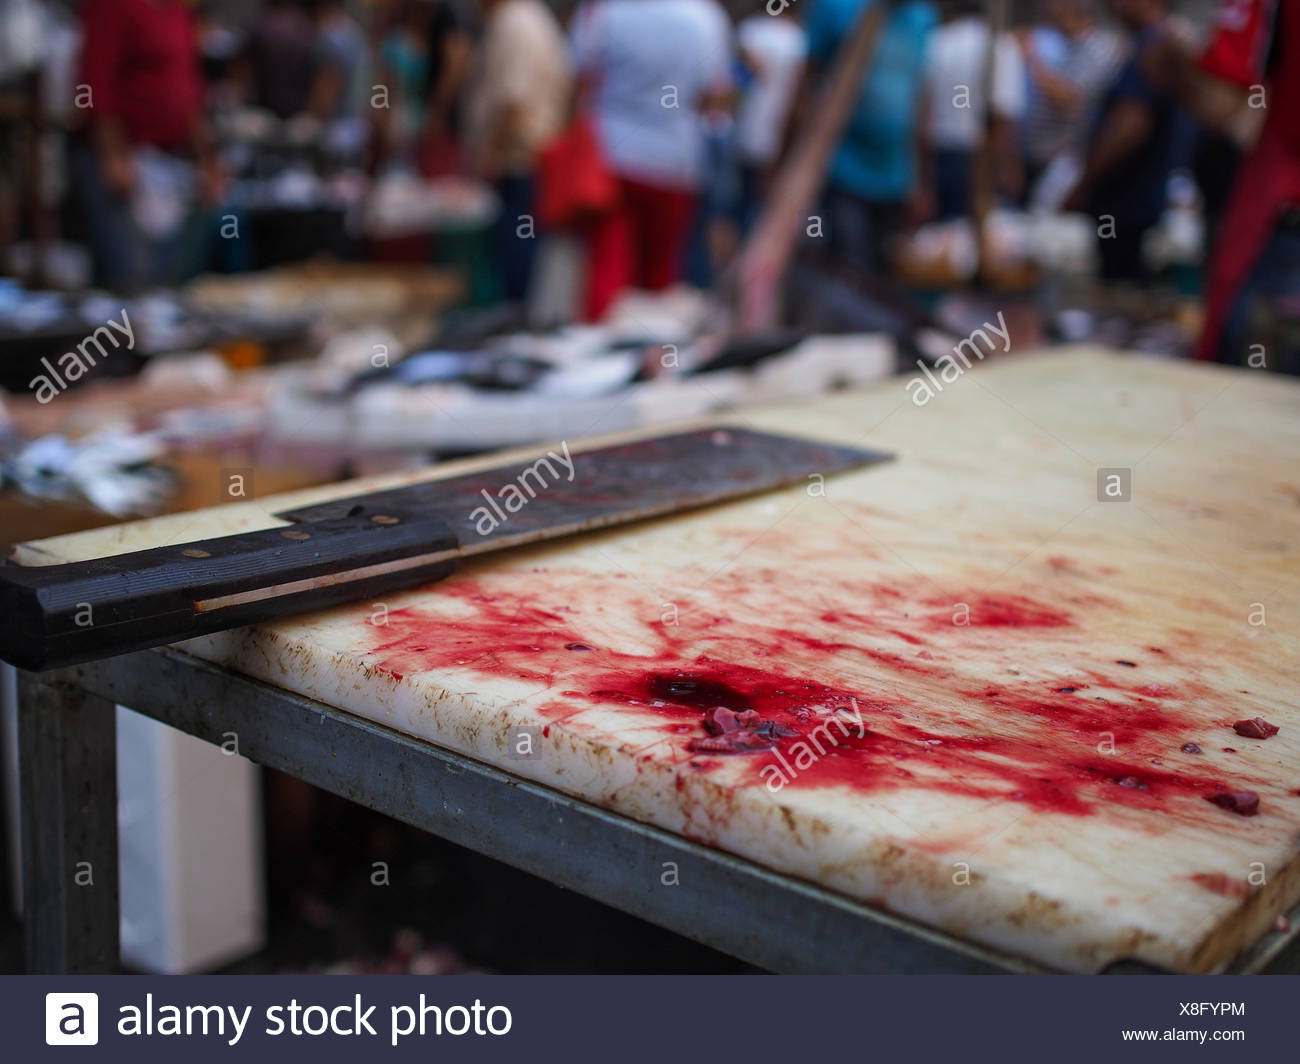 Close-Up Of Meat Cleaver With Blood On Cutting Board At Fish Market - Stock Image